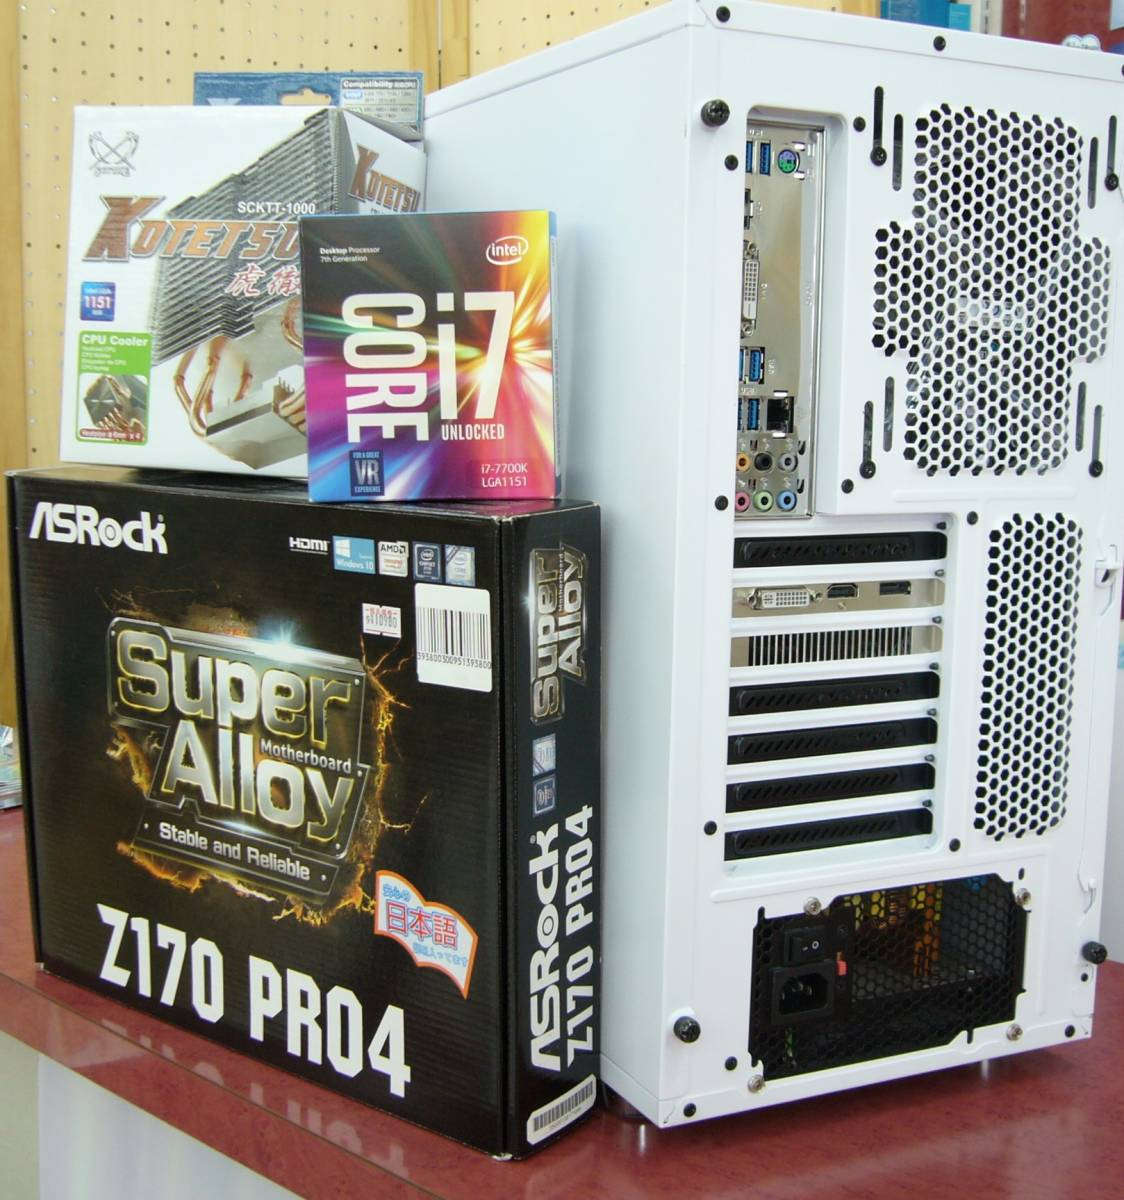 高性能美品◆I7 7700K/Z170/8GB/SSD/750W PLATINUM/Win10◆自作PC